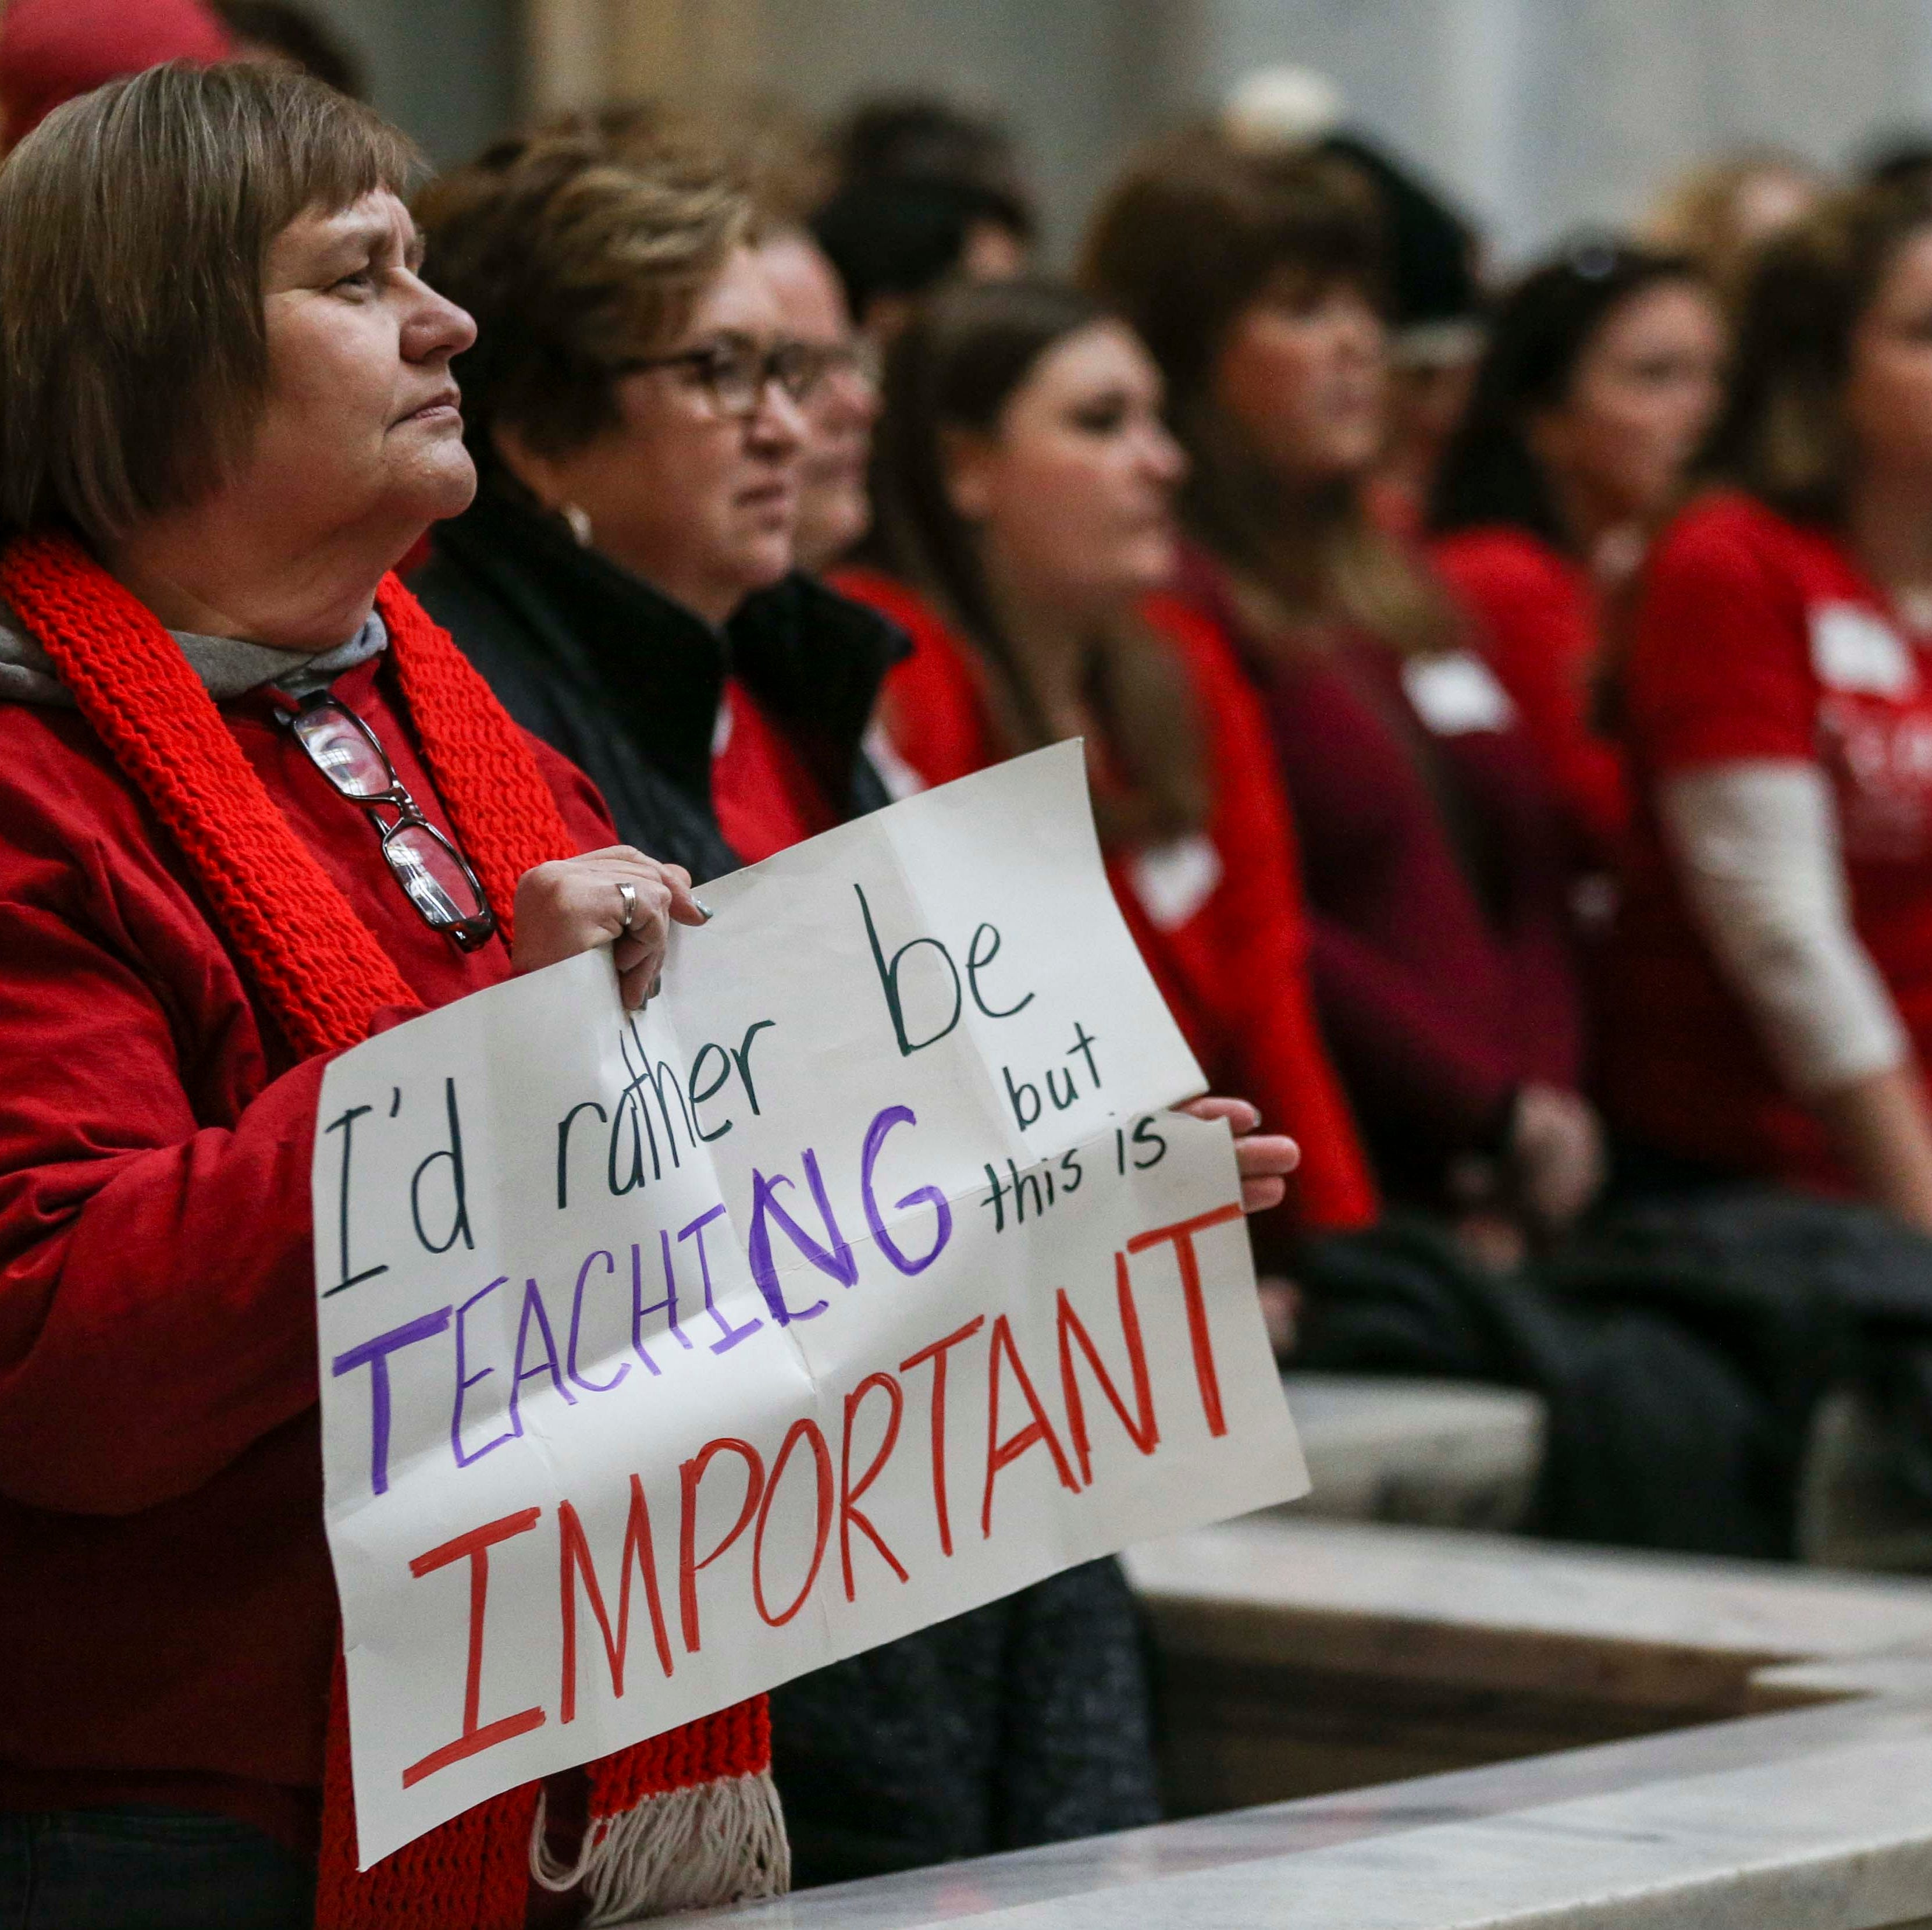 Mississippi teacher strike: Poll shows educators support one-day sickout, not extended walk out